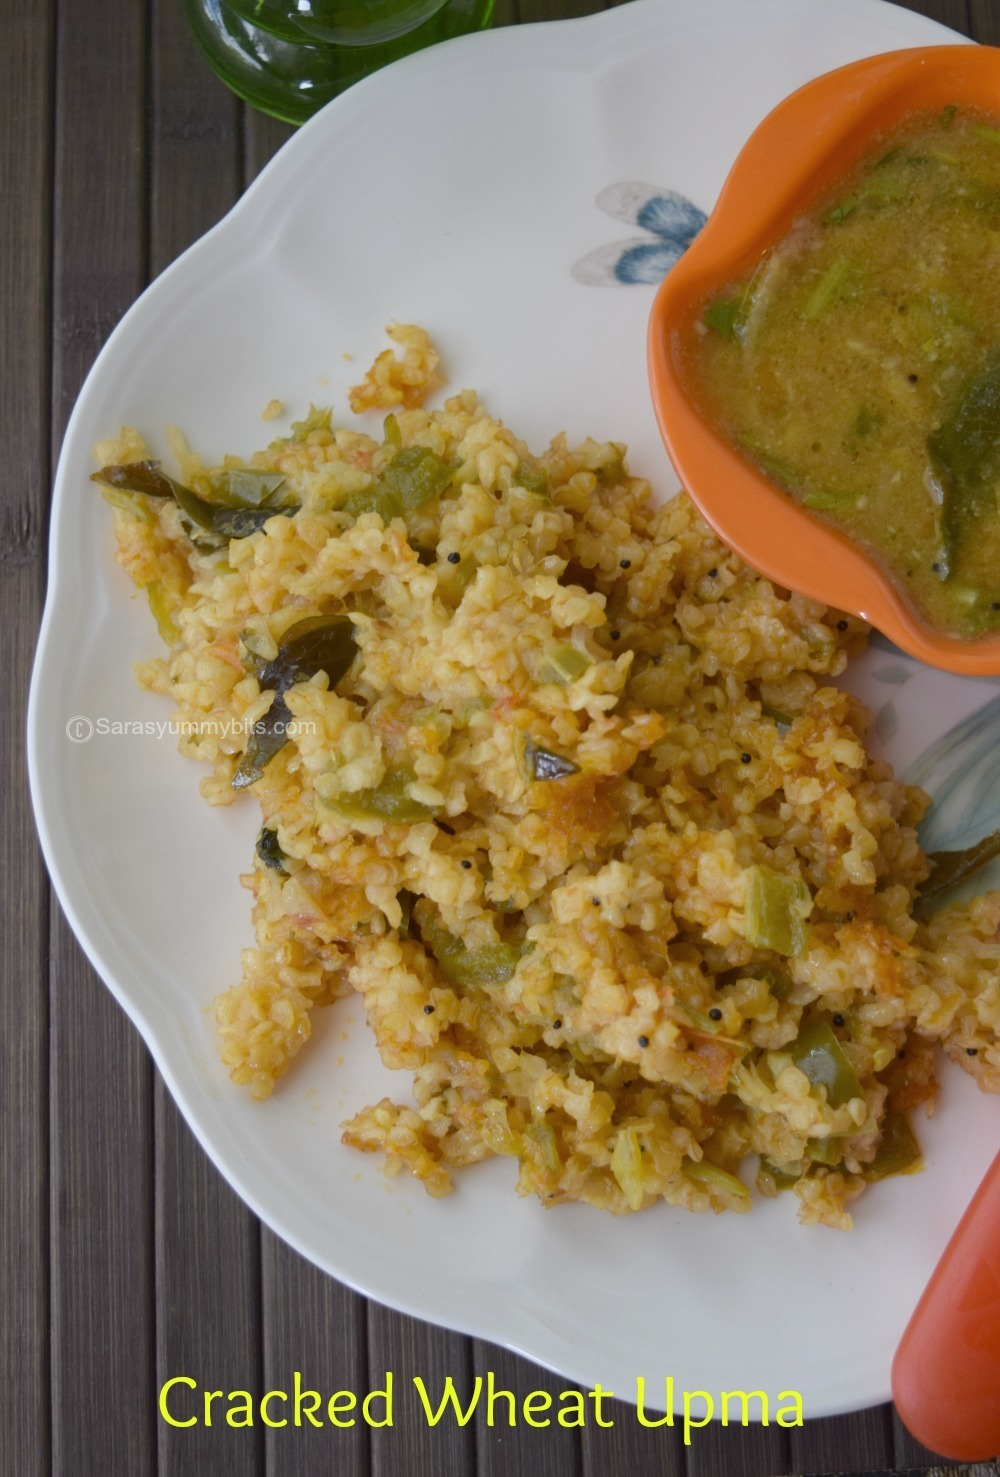 Gothumai Rava upma / Crackled wheat Upma with Bell pepper